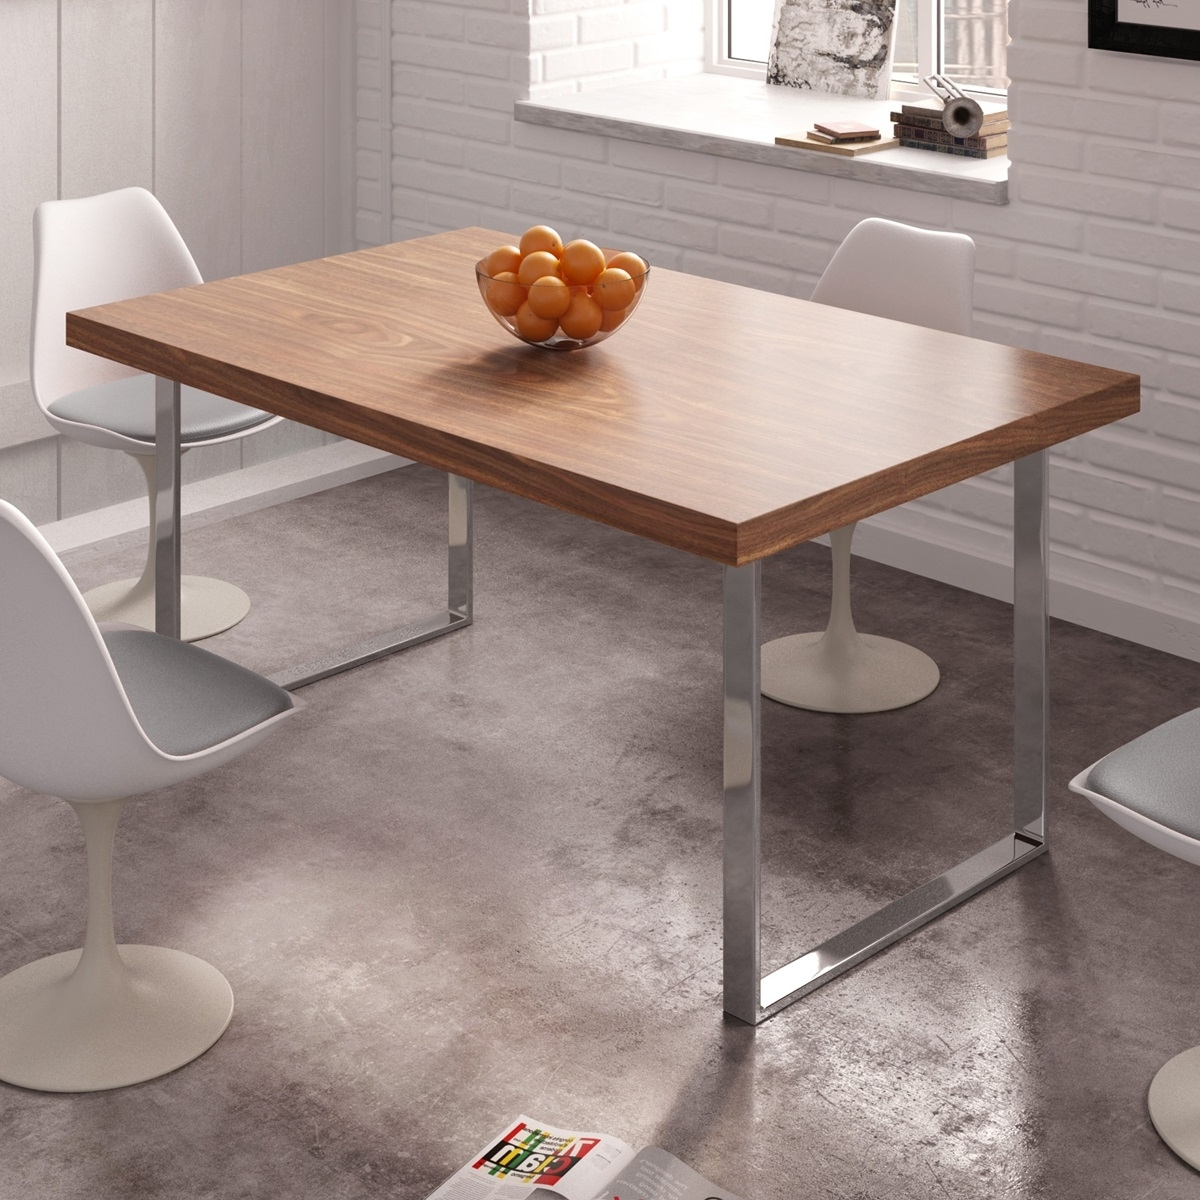 Eco Natura Roma Dining Table Regarding Well Known Roma Dining Tables (View 7 of 25)